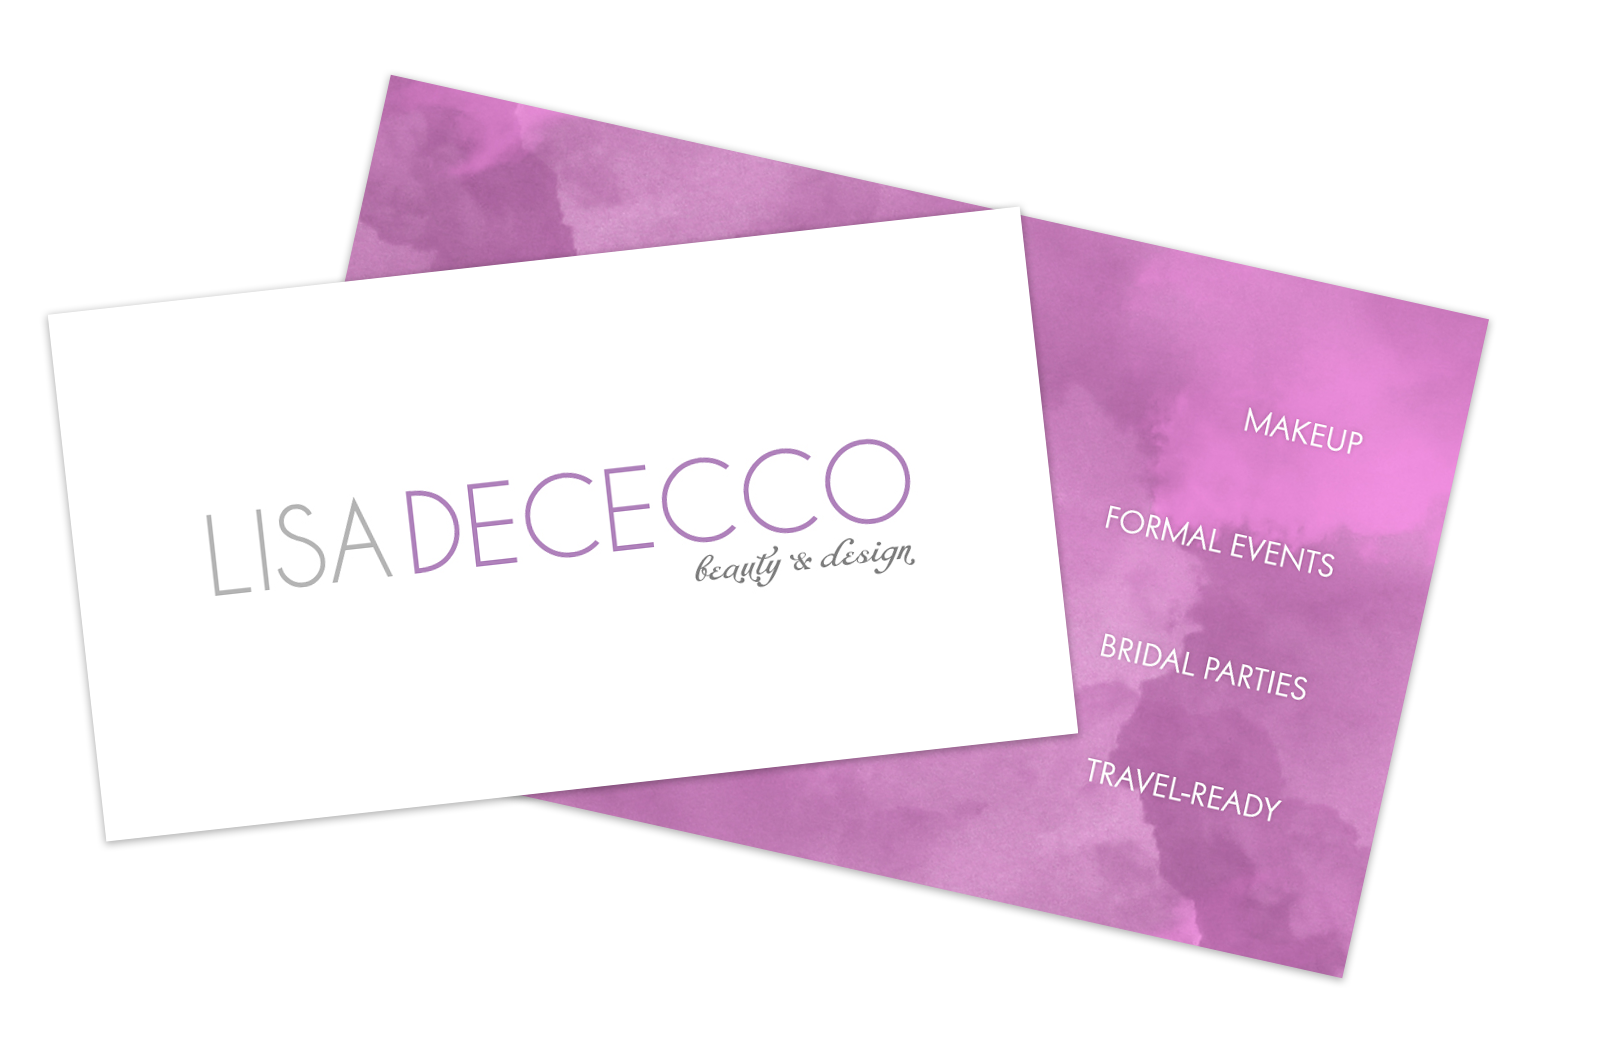 Lisa DeCecco - Beauty and Design Business Cards